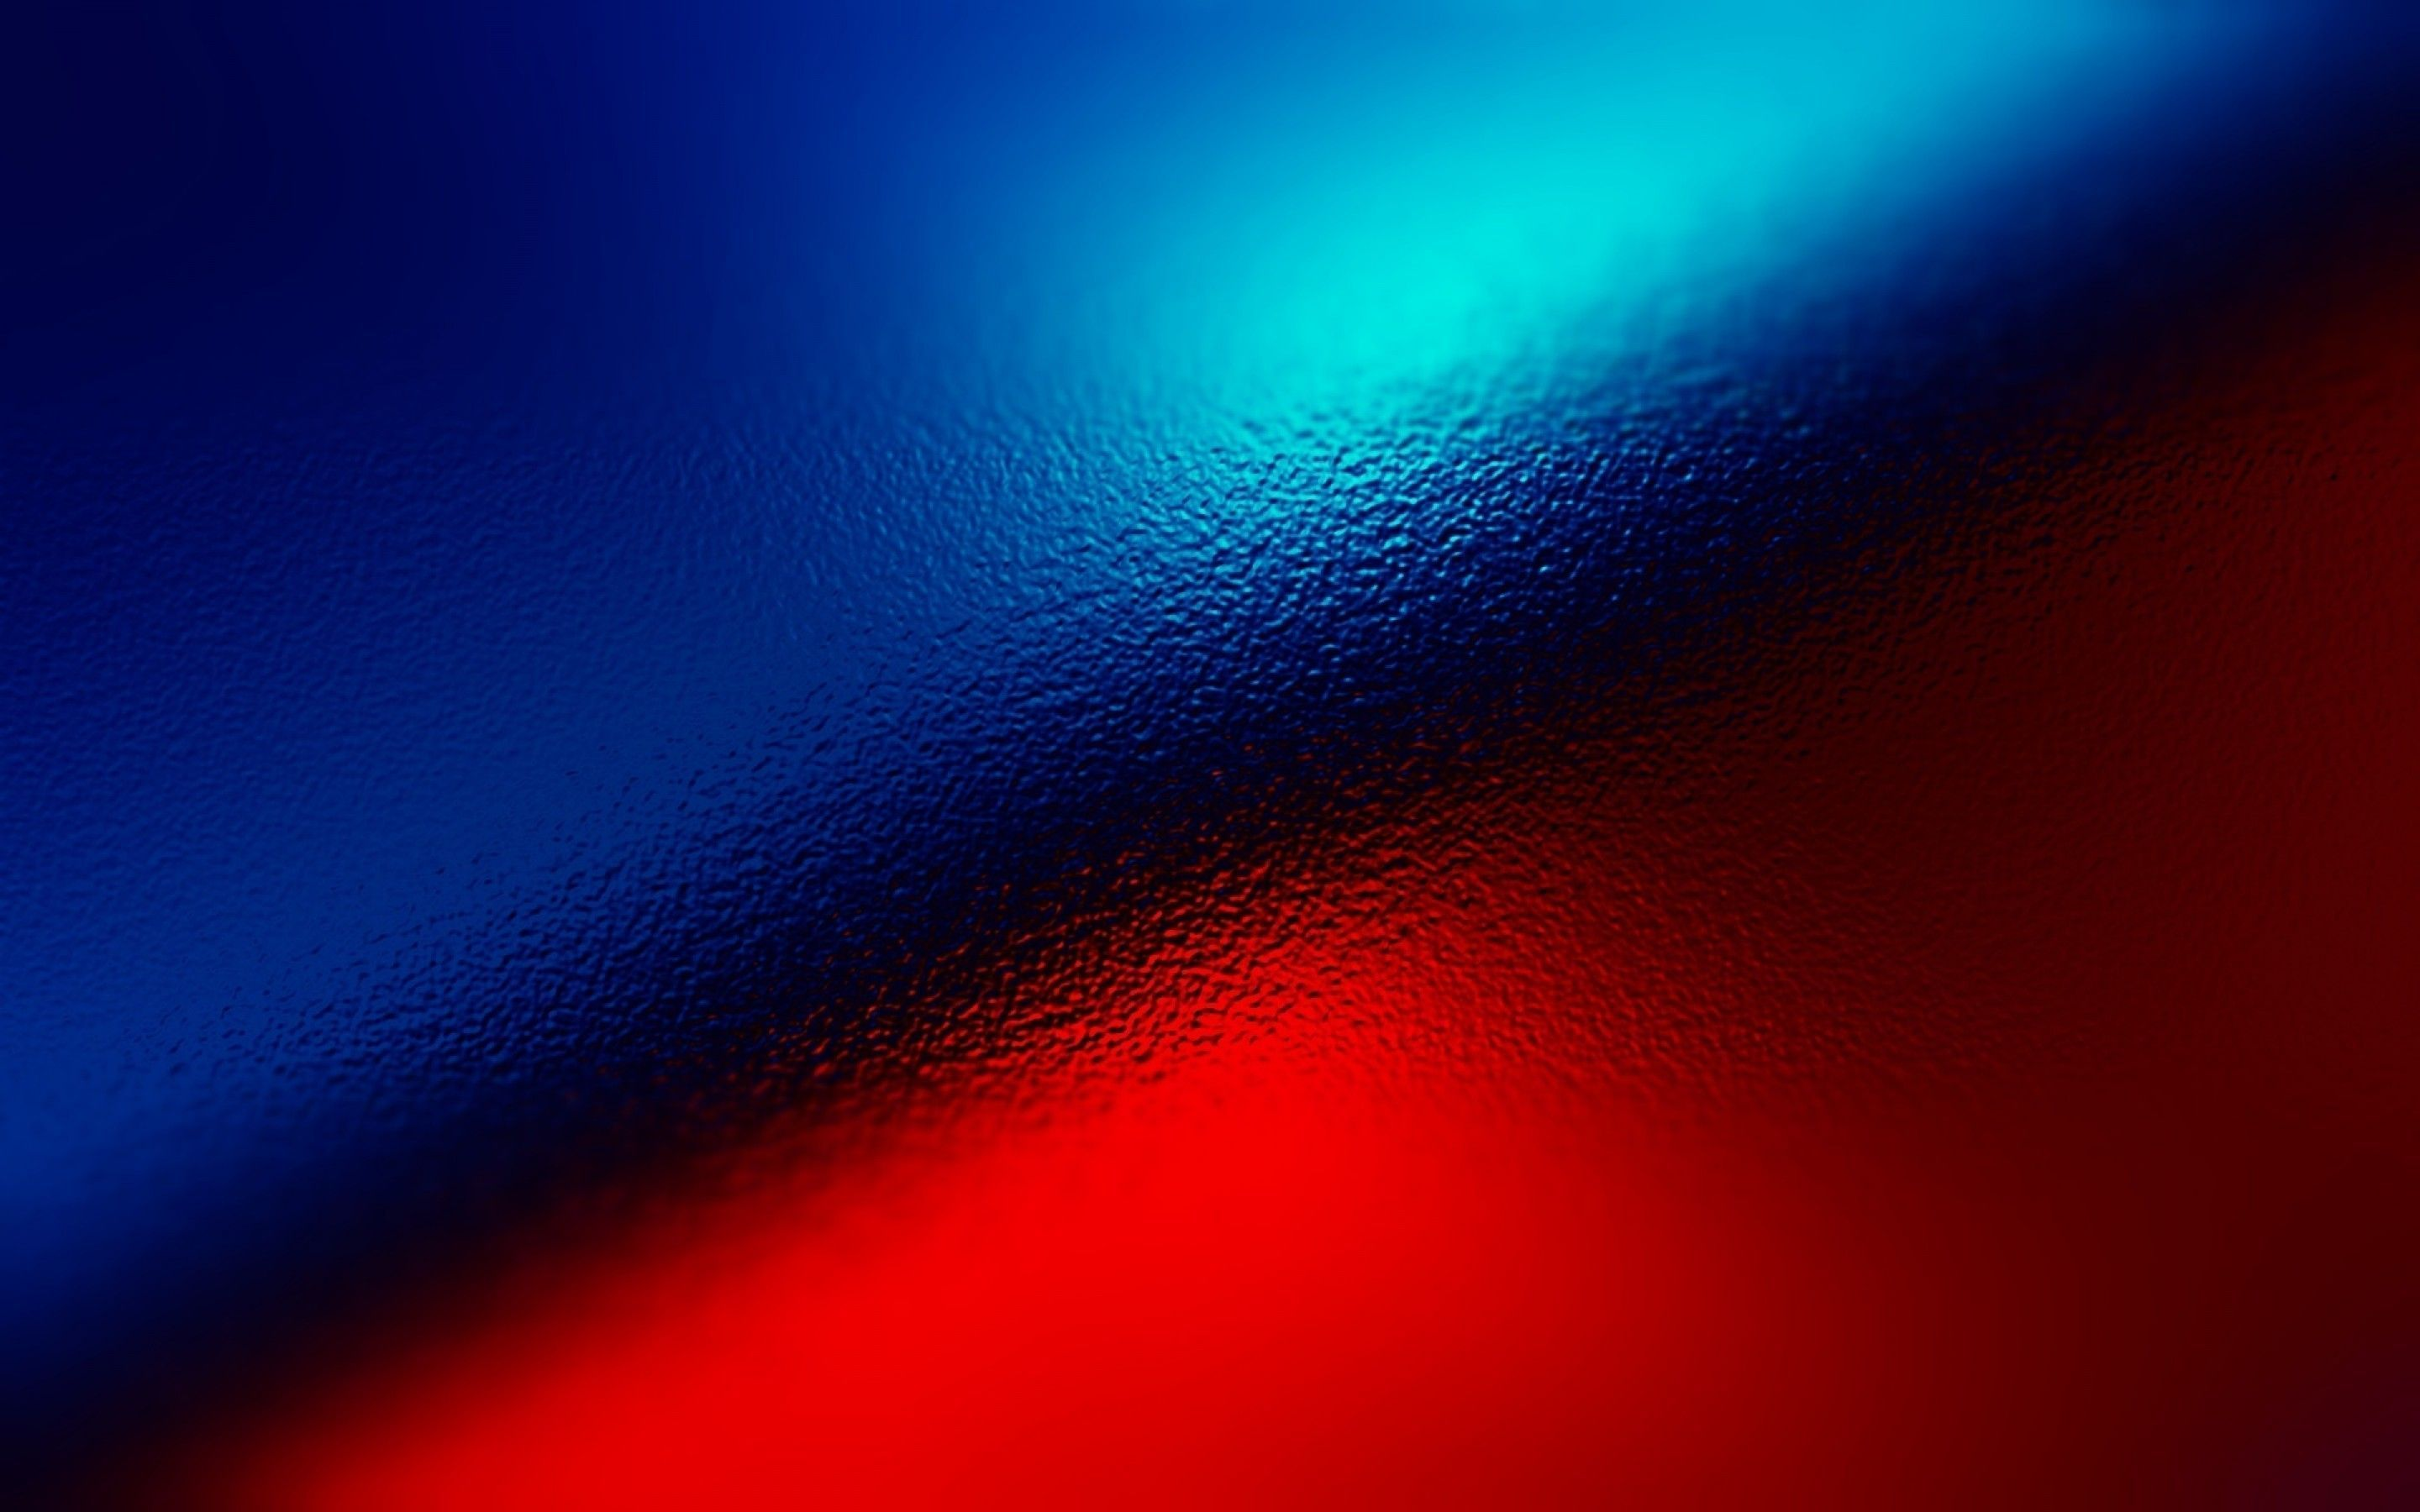 Red Blue Aesthetic Wallpapers Top Free Red Blue Aesthetic